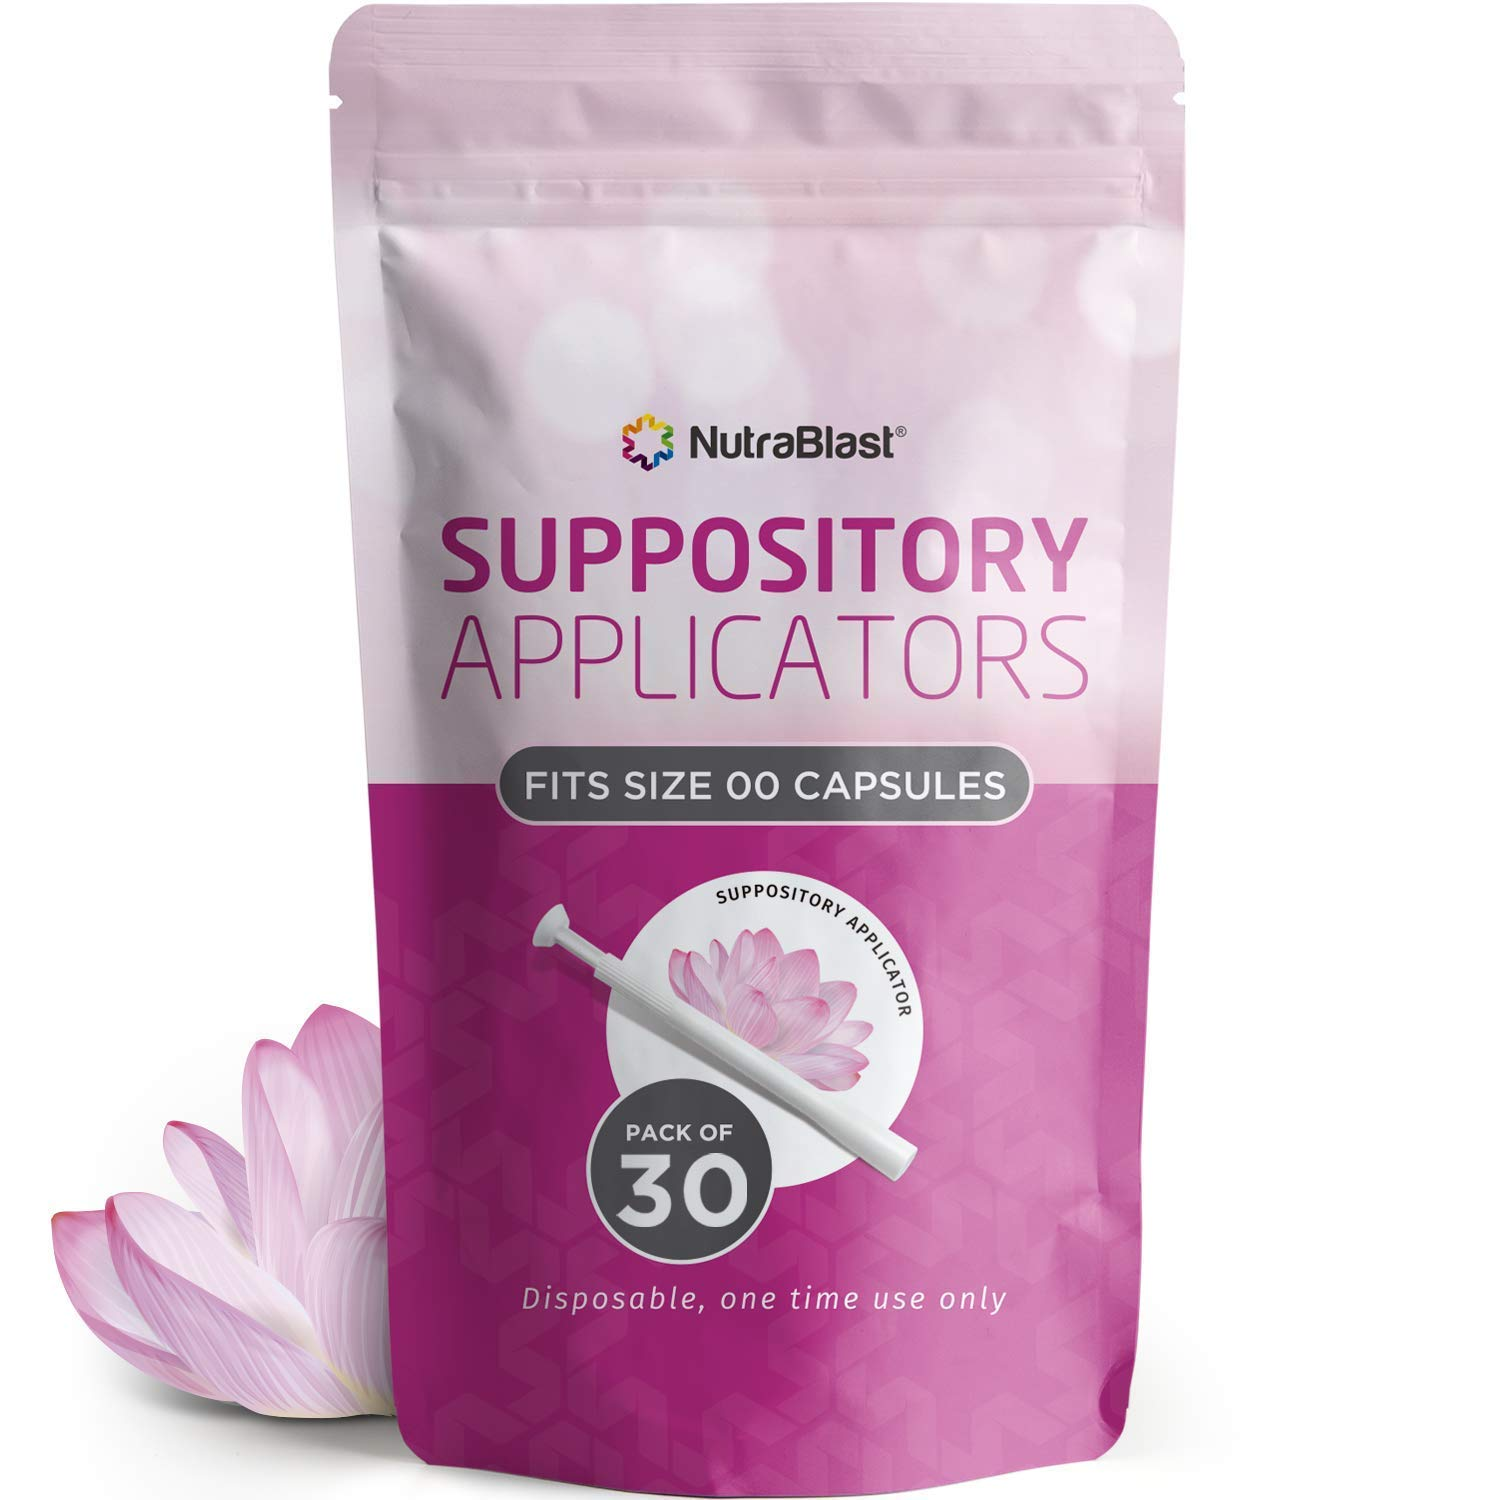 NutraBlast Disposable Vaginal Suppository Applicators (30-Pack) | Fits Most Brands, Pills, Tablets and Boric Acid Suppositories | Individually Wrapped